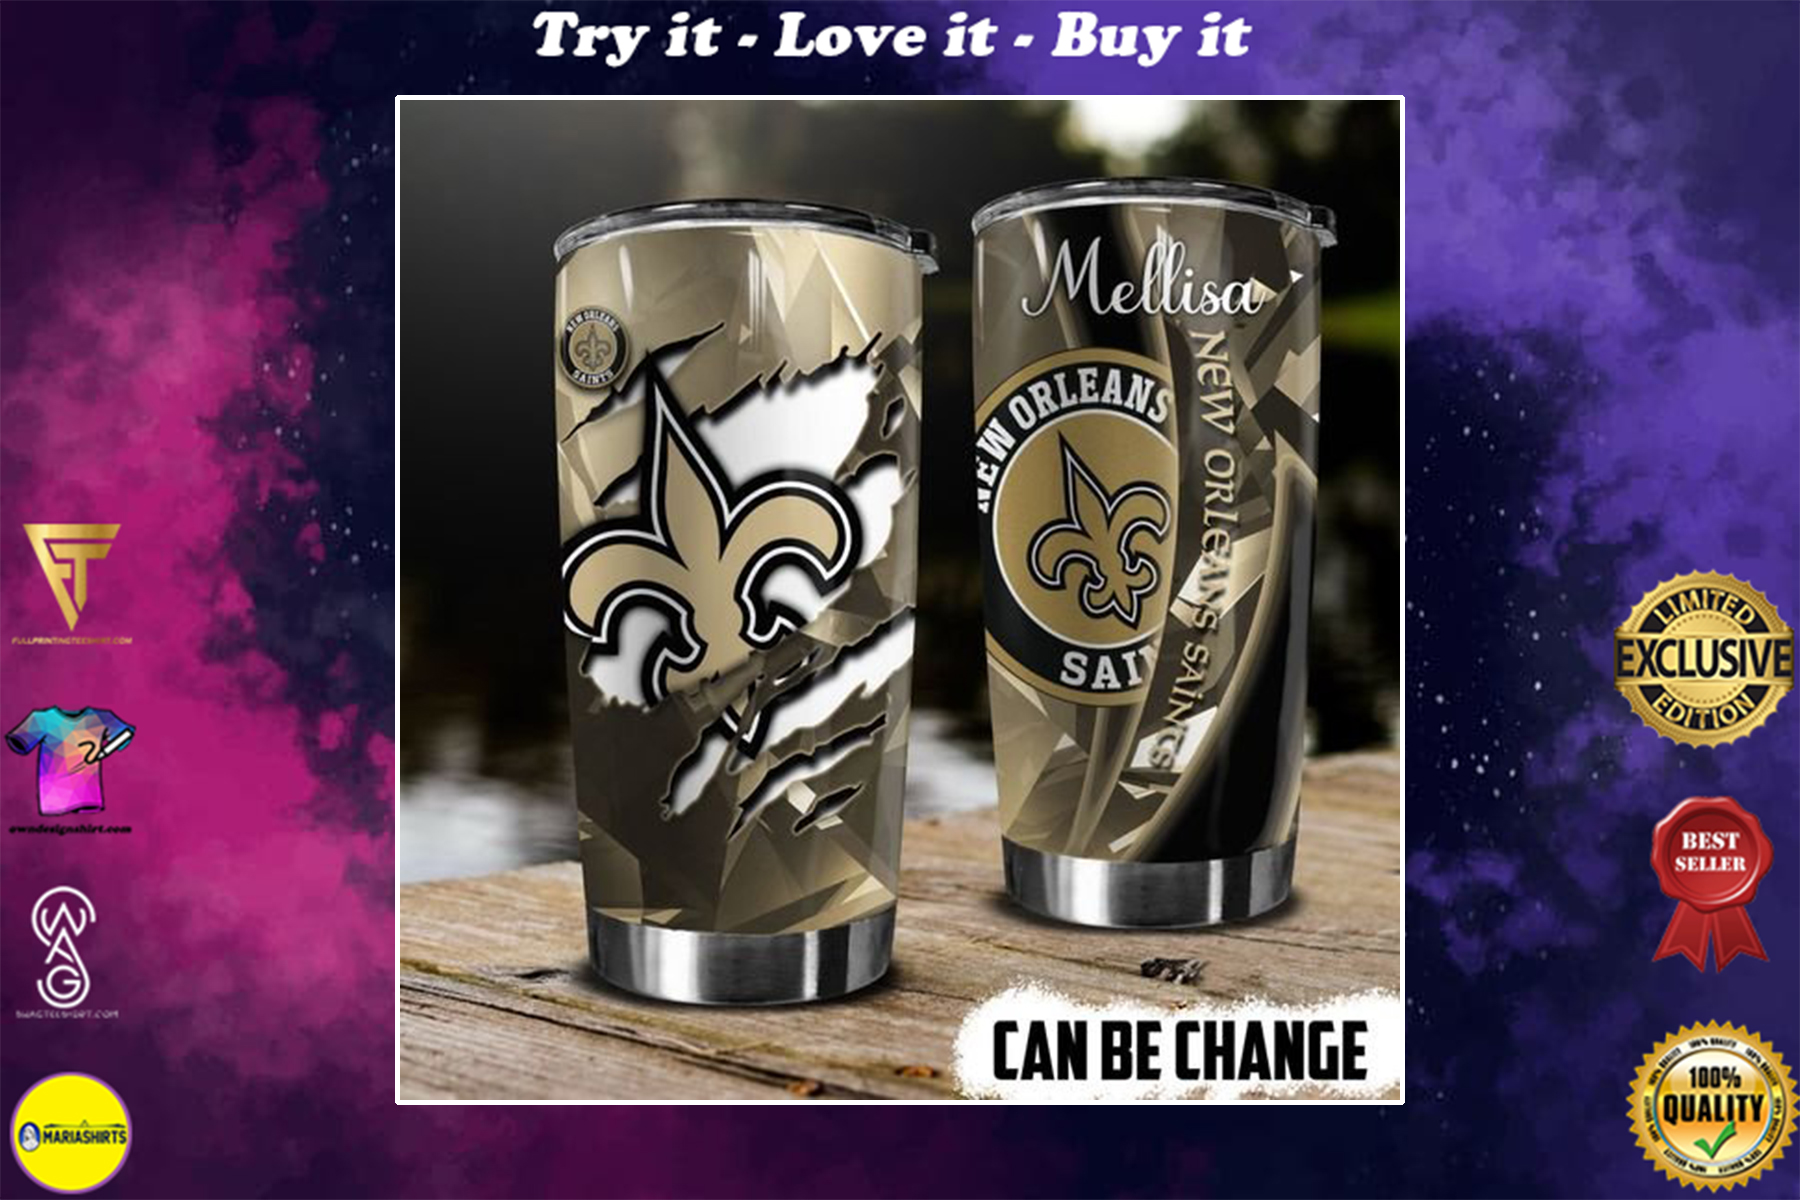 personalized name new orleans saints american football team tumbler